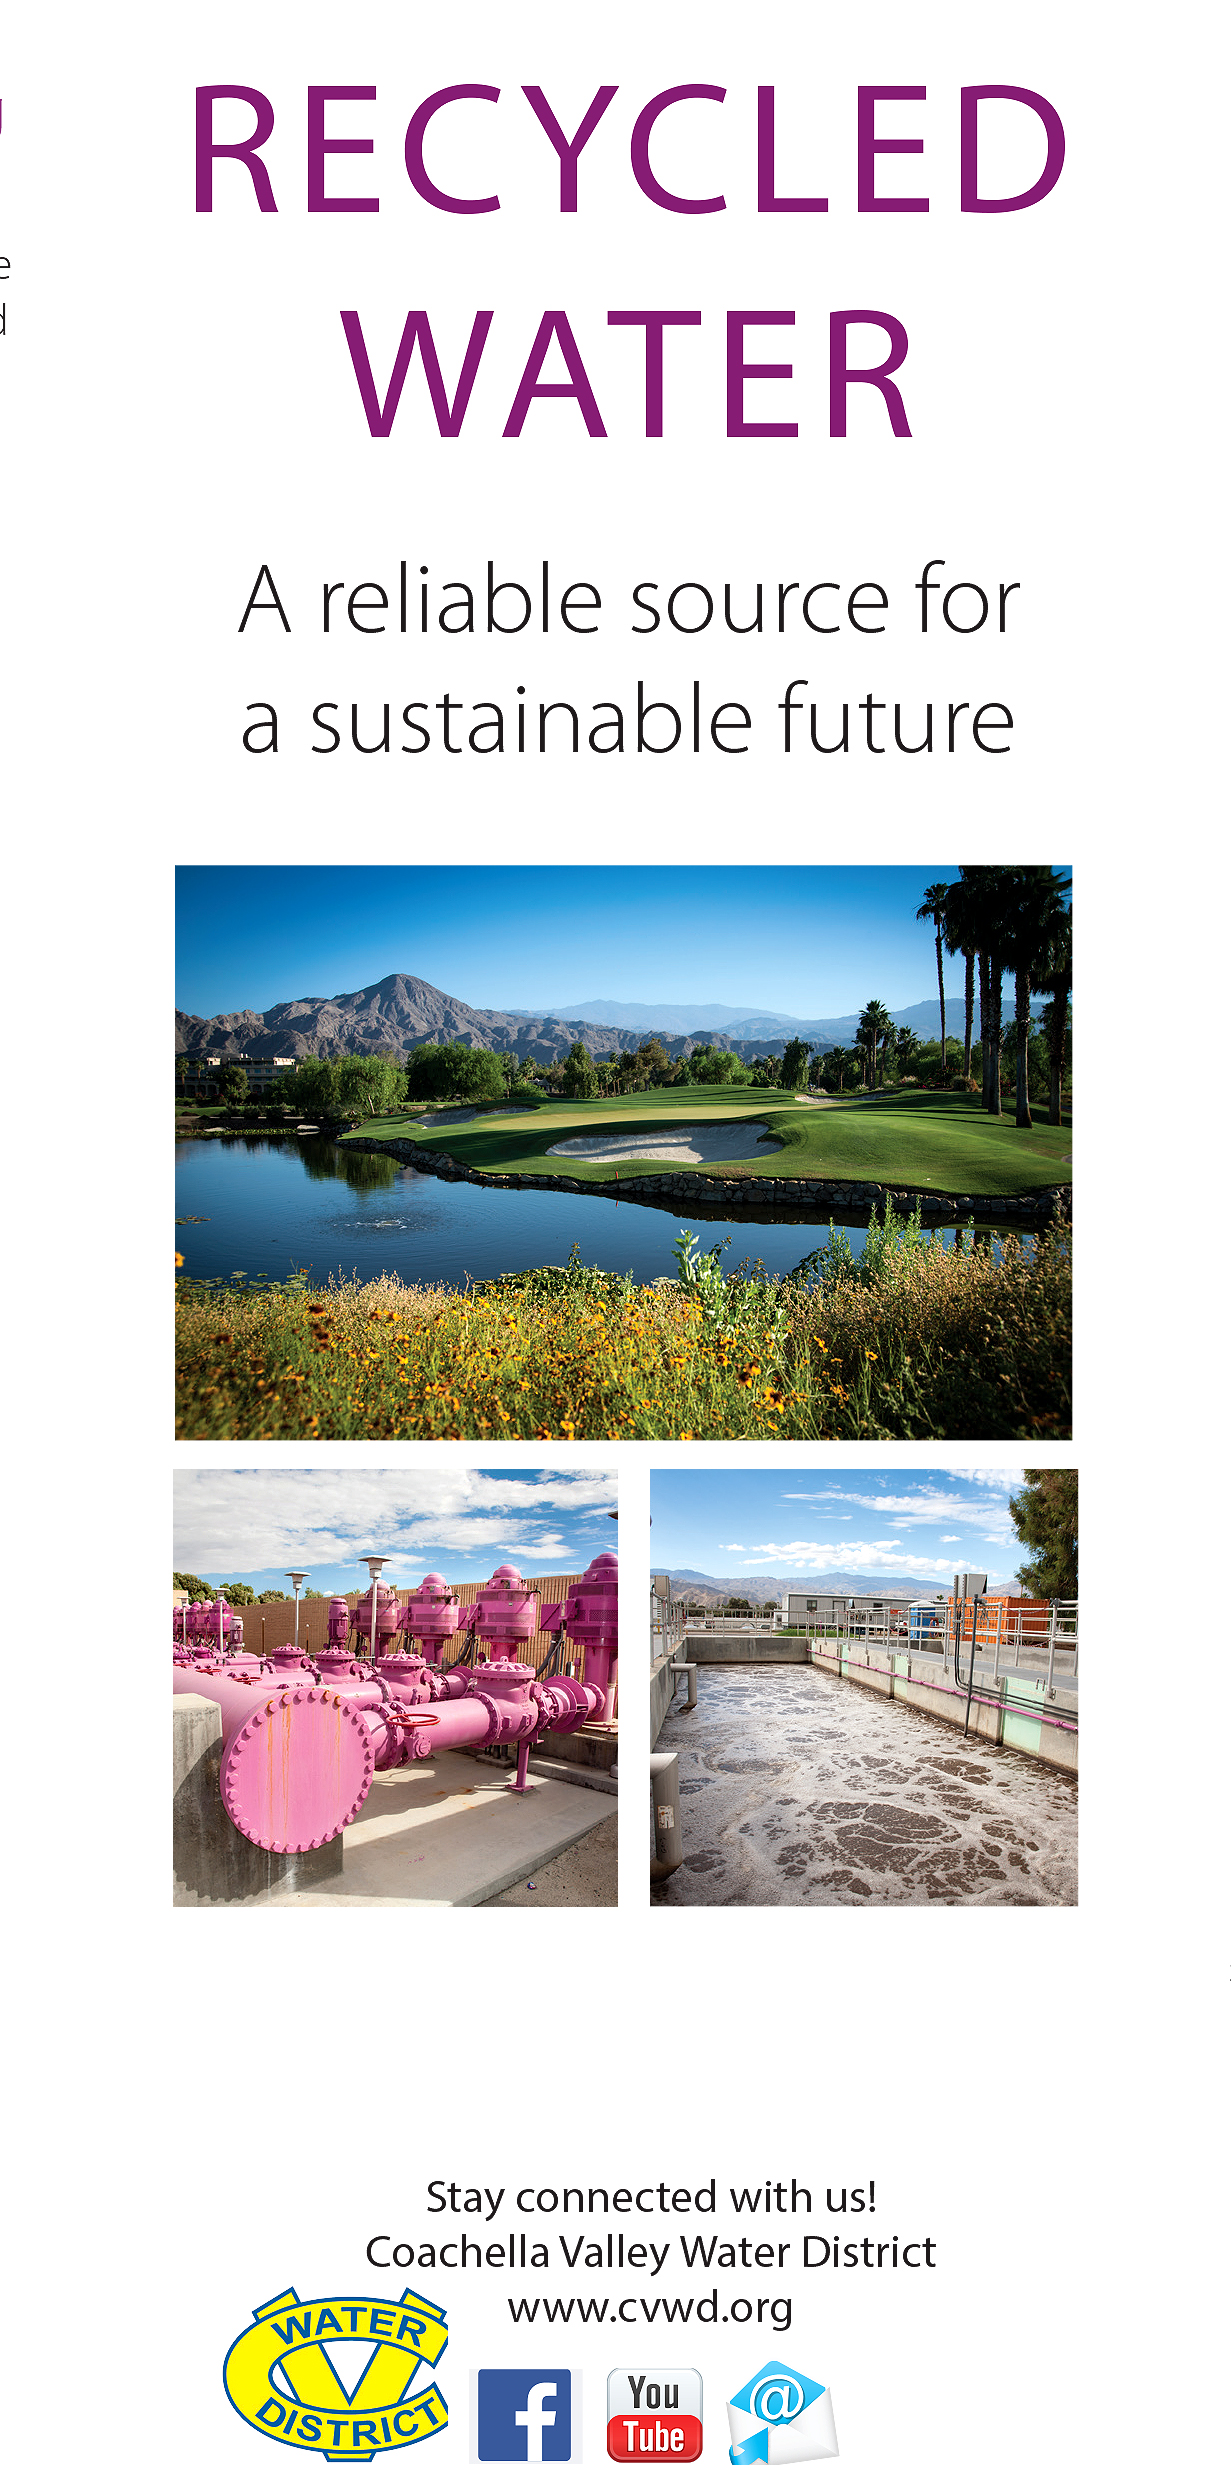 Recycled Water Brochure image